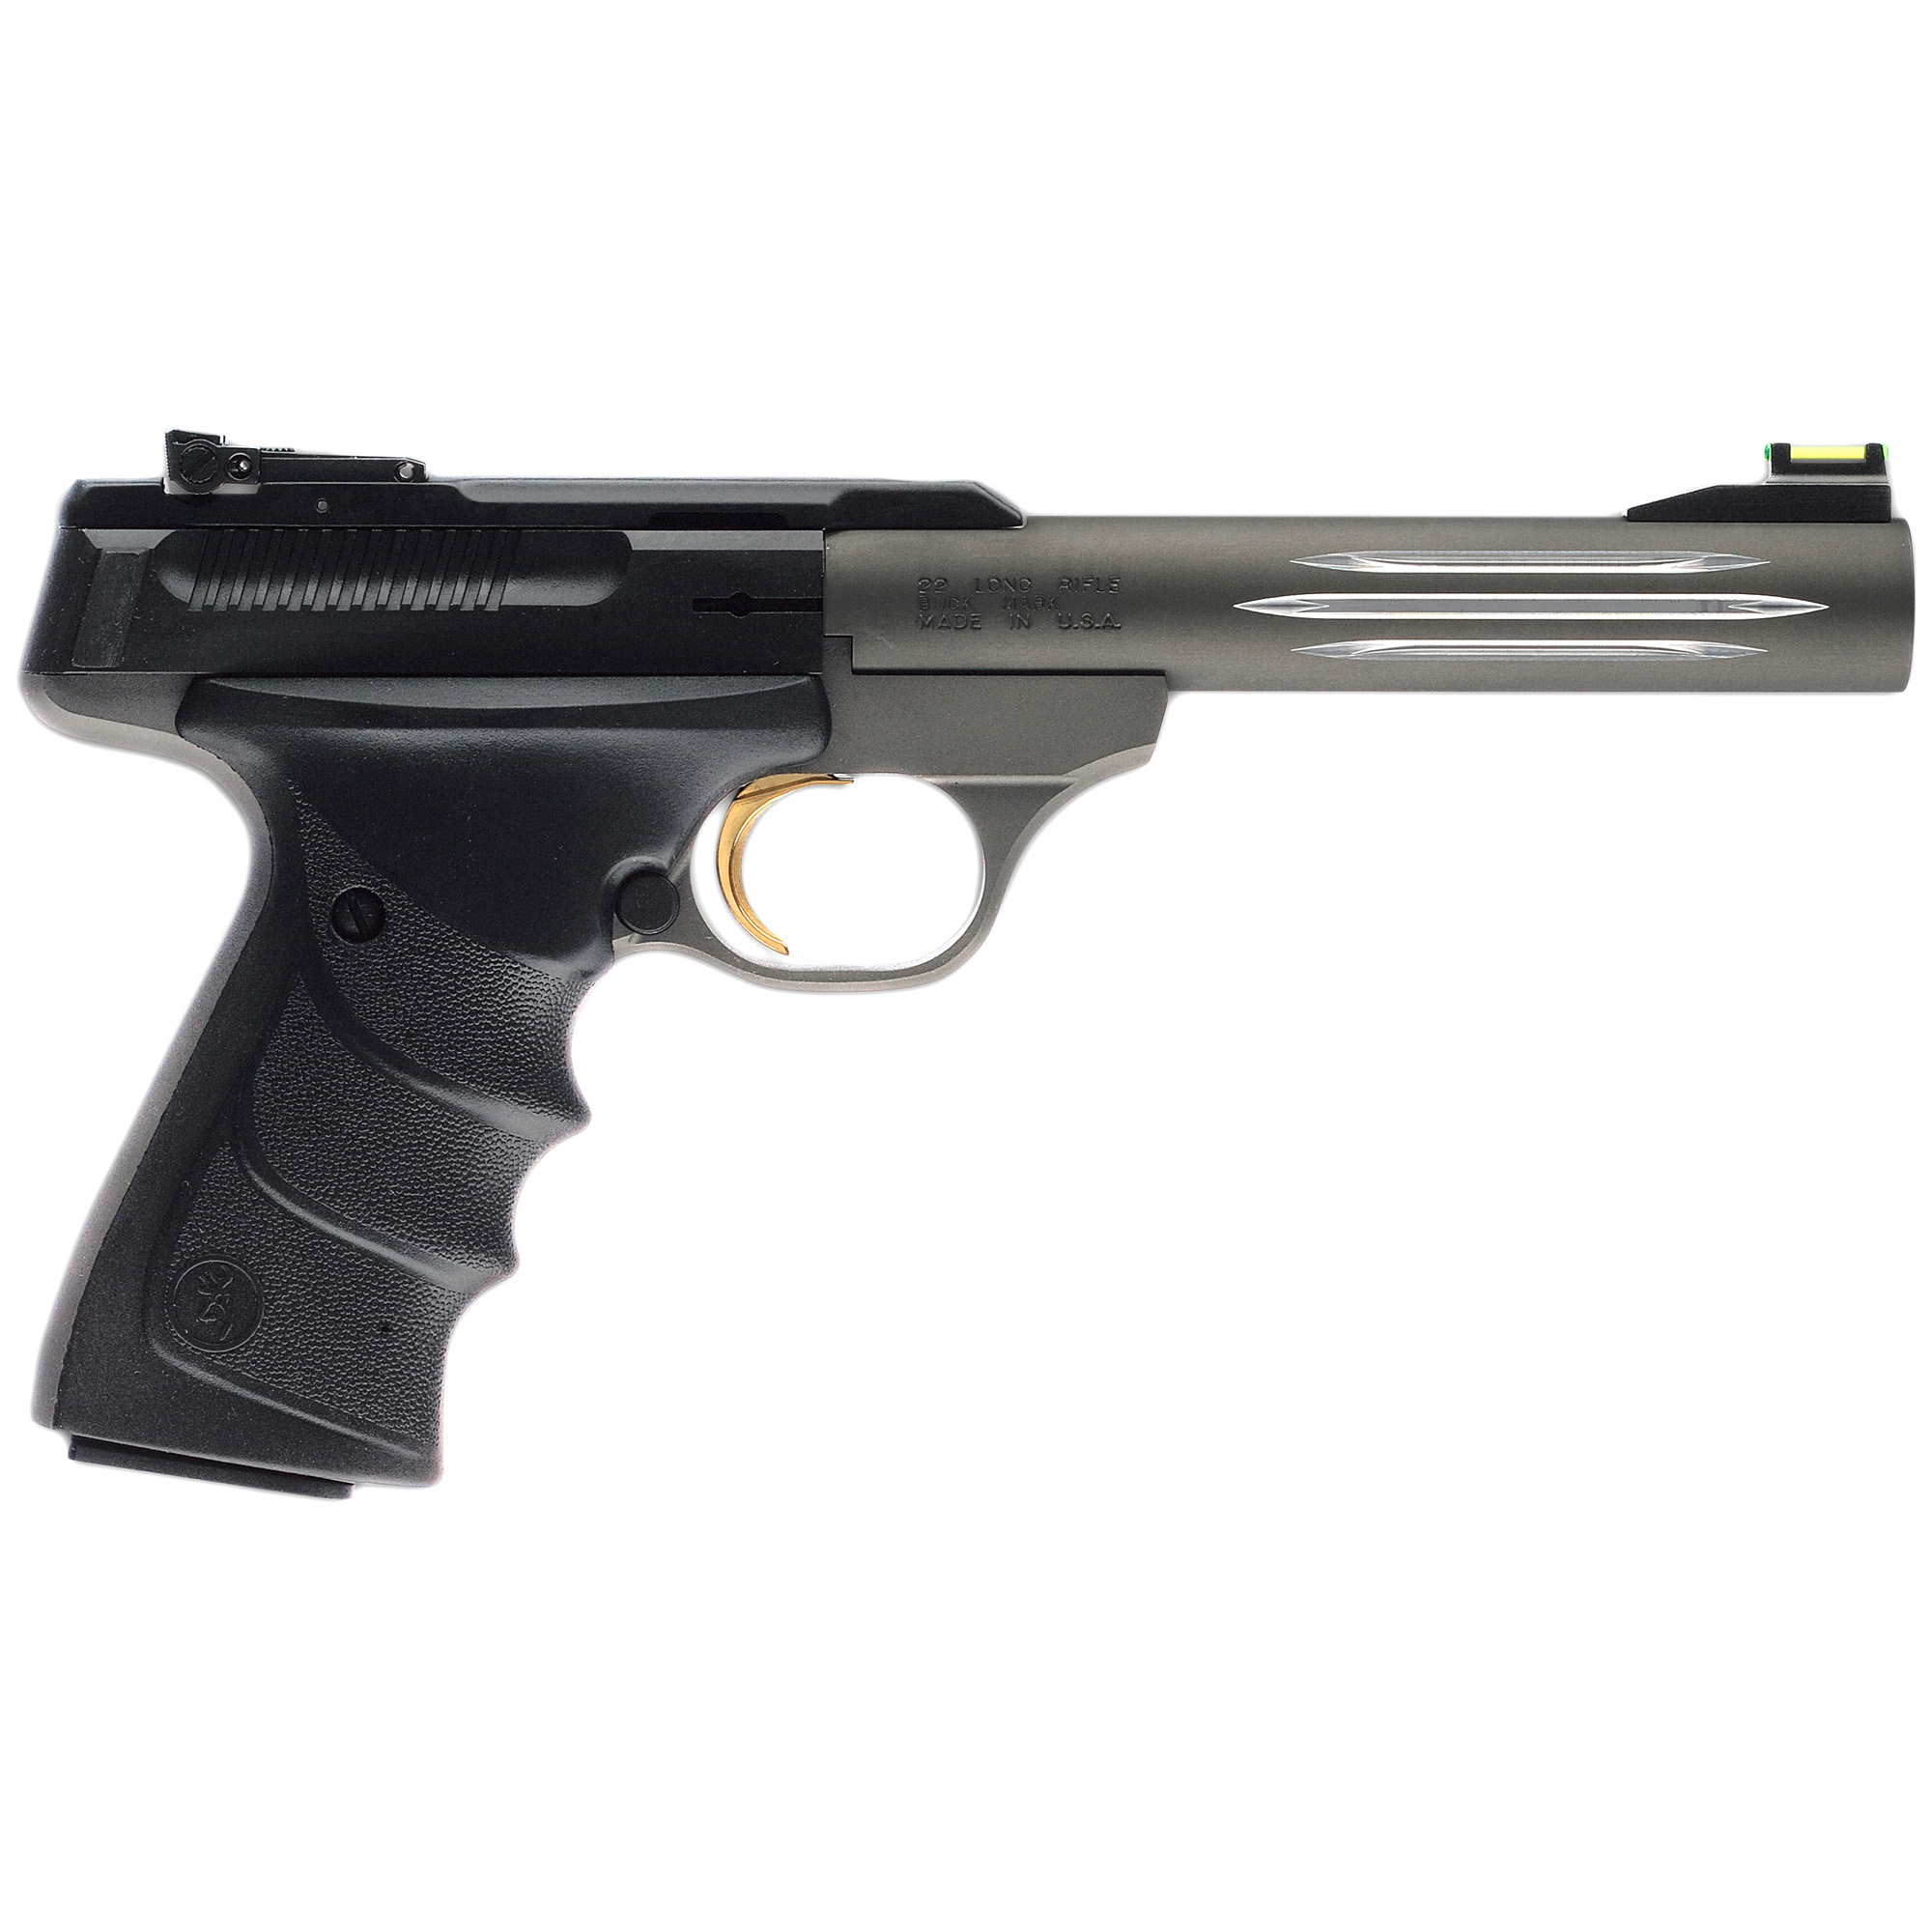 "Brown Bm Lite Gray Urx 22lr 5.5"" Blk"